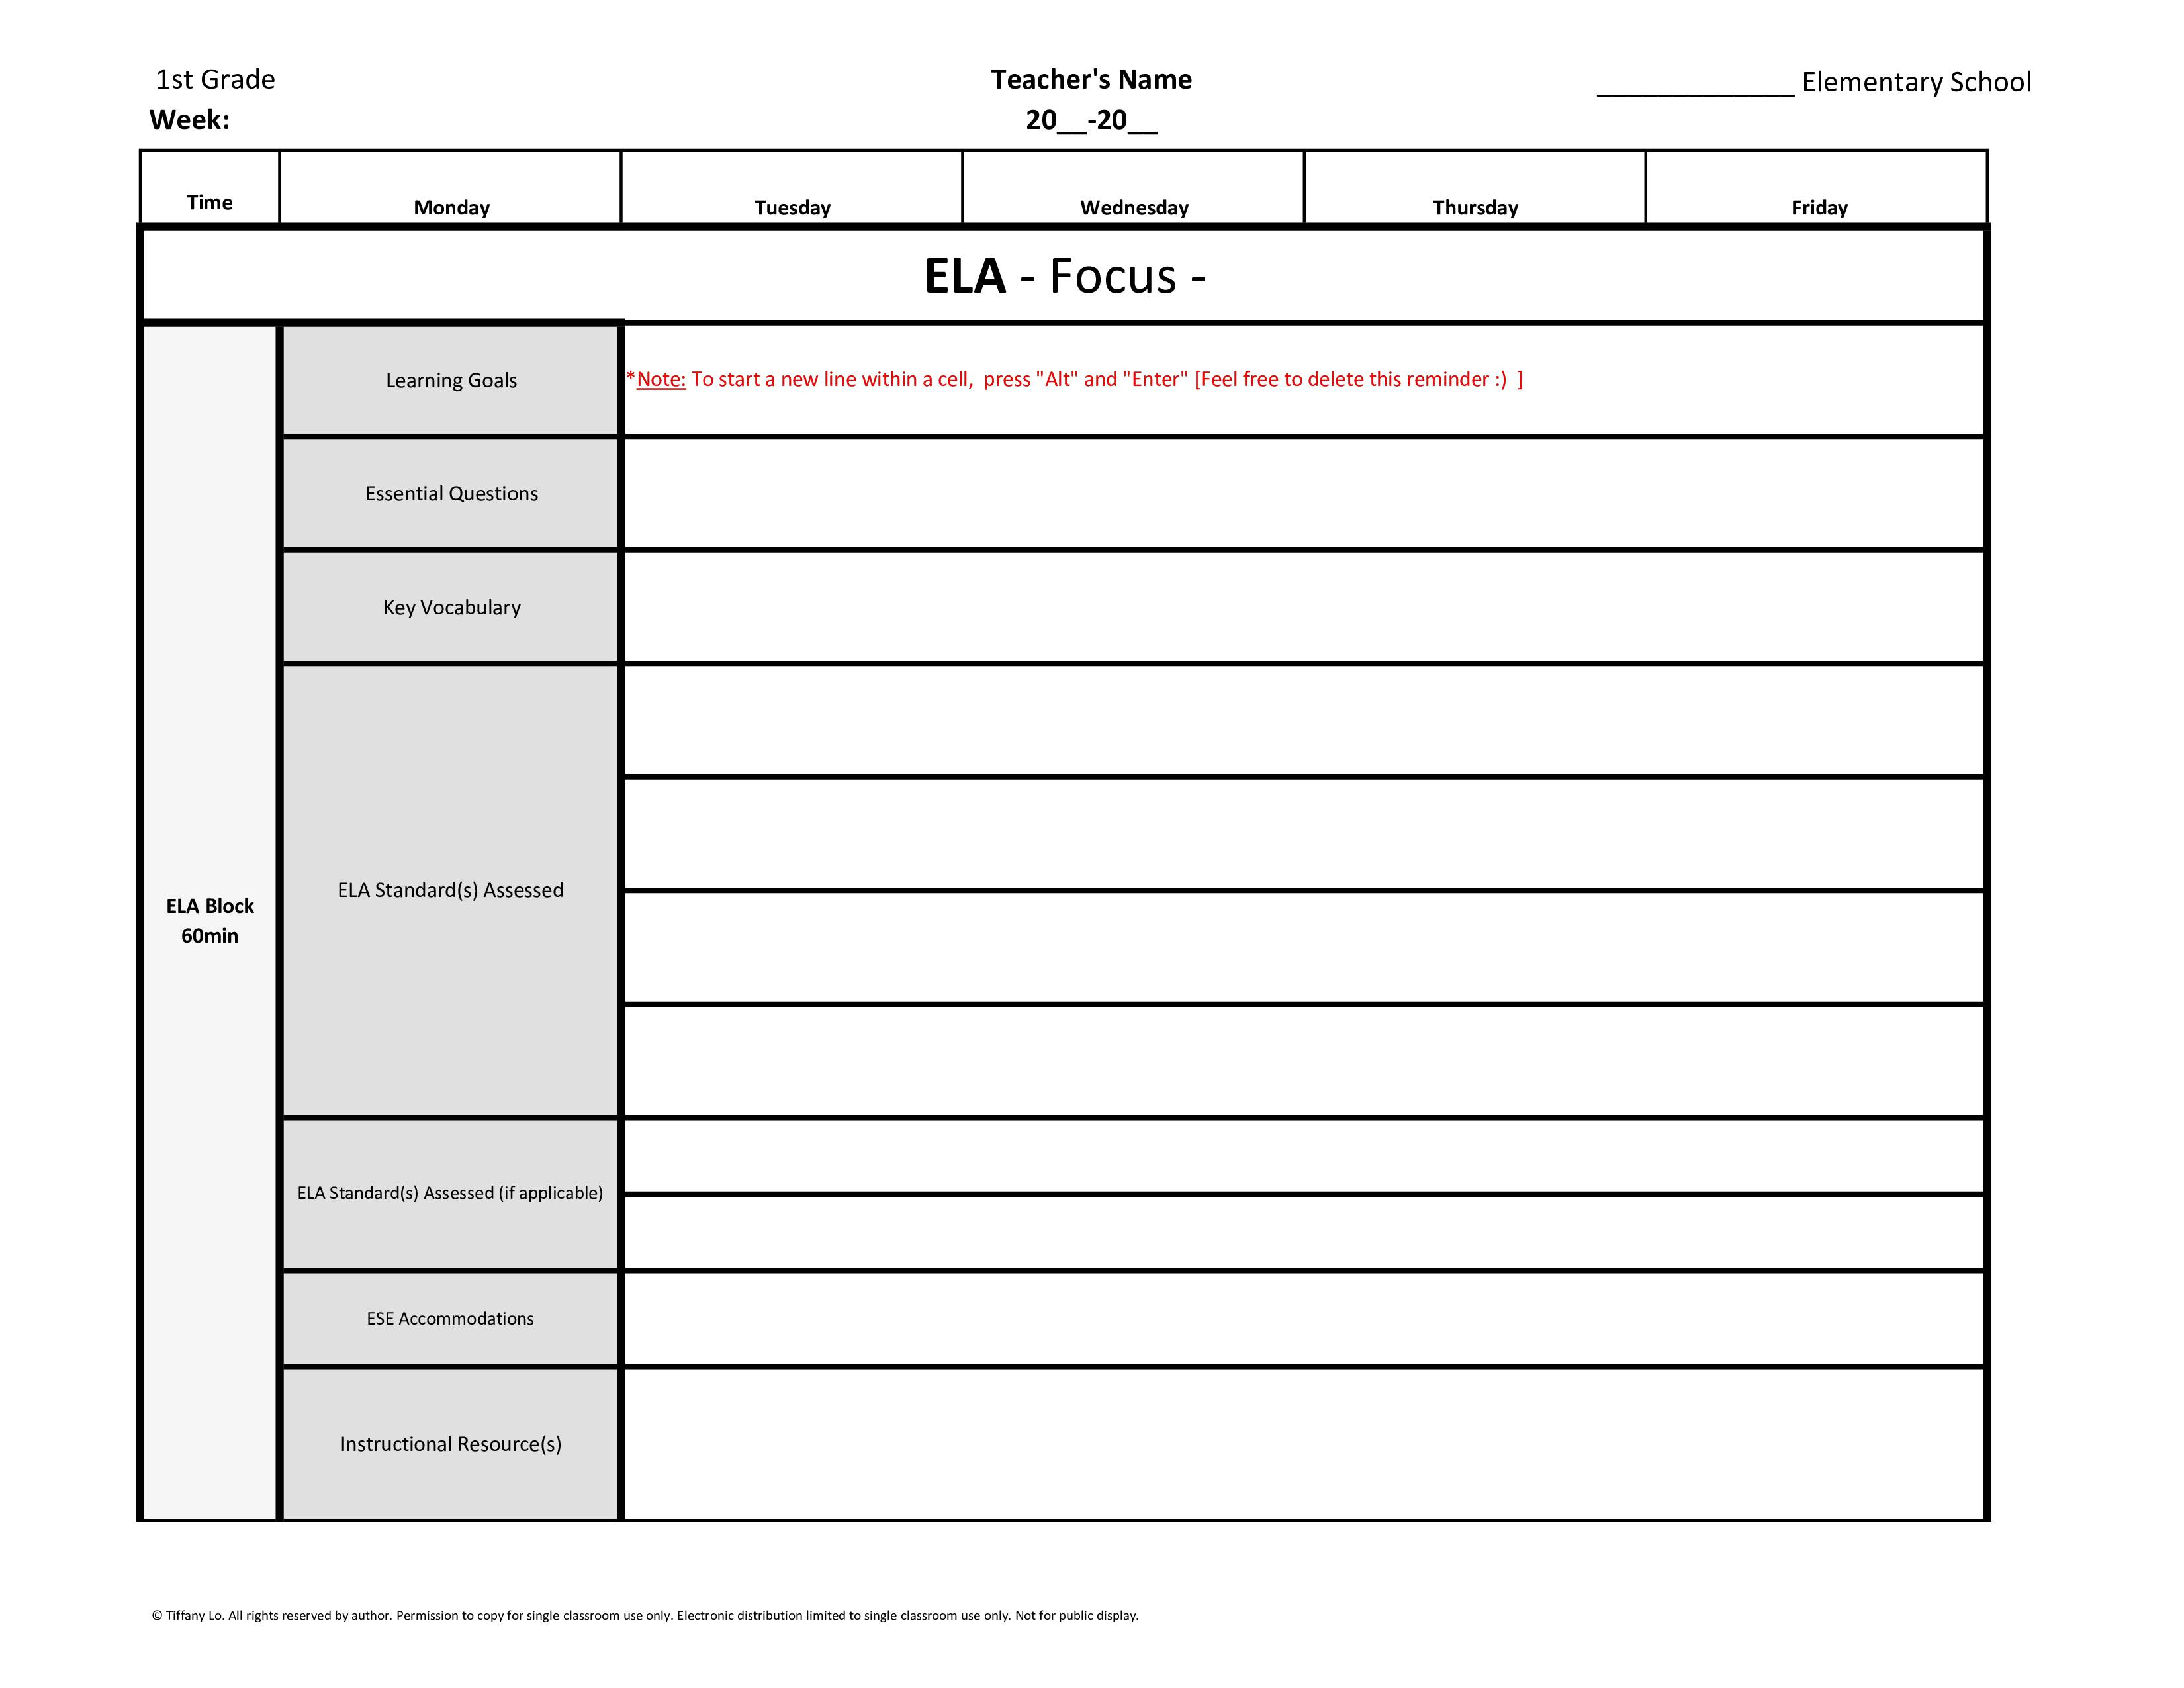 1st first grade weekly lesson plan template w florida standards drop down lists tutor and. Black Bedroom Furniture Sets. Home Design Ideas